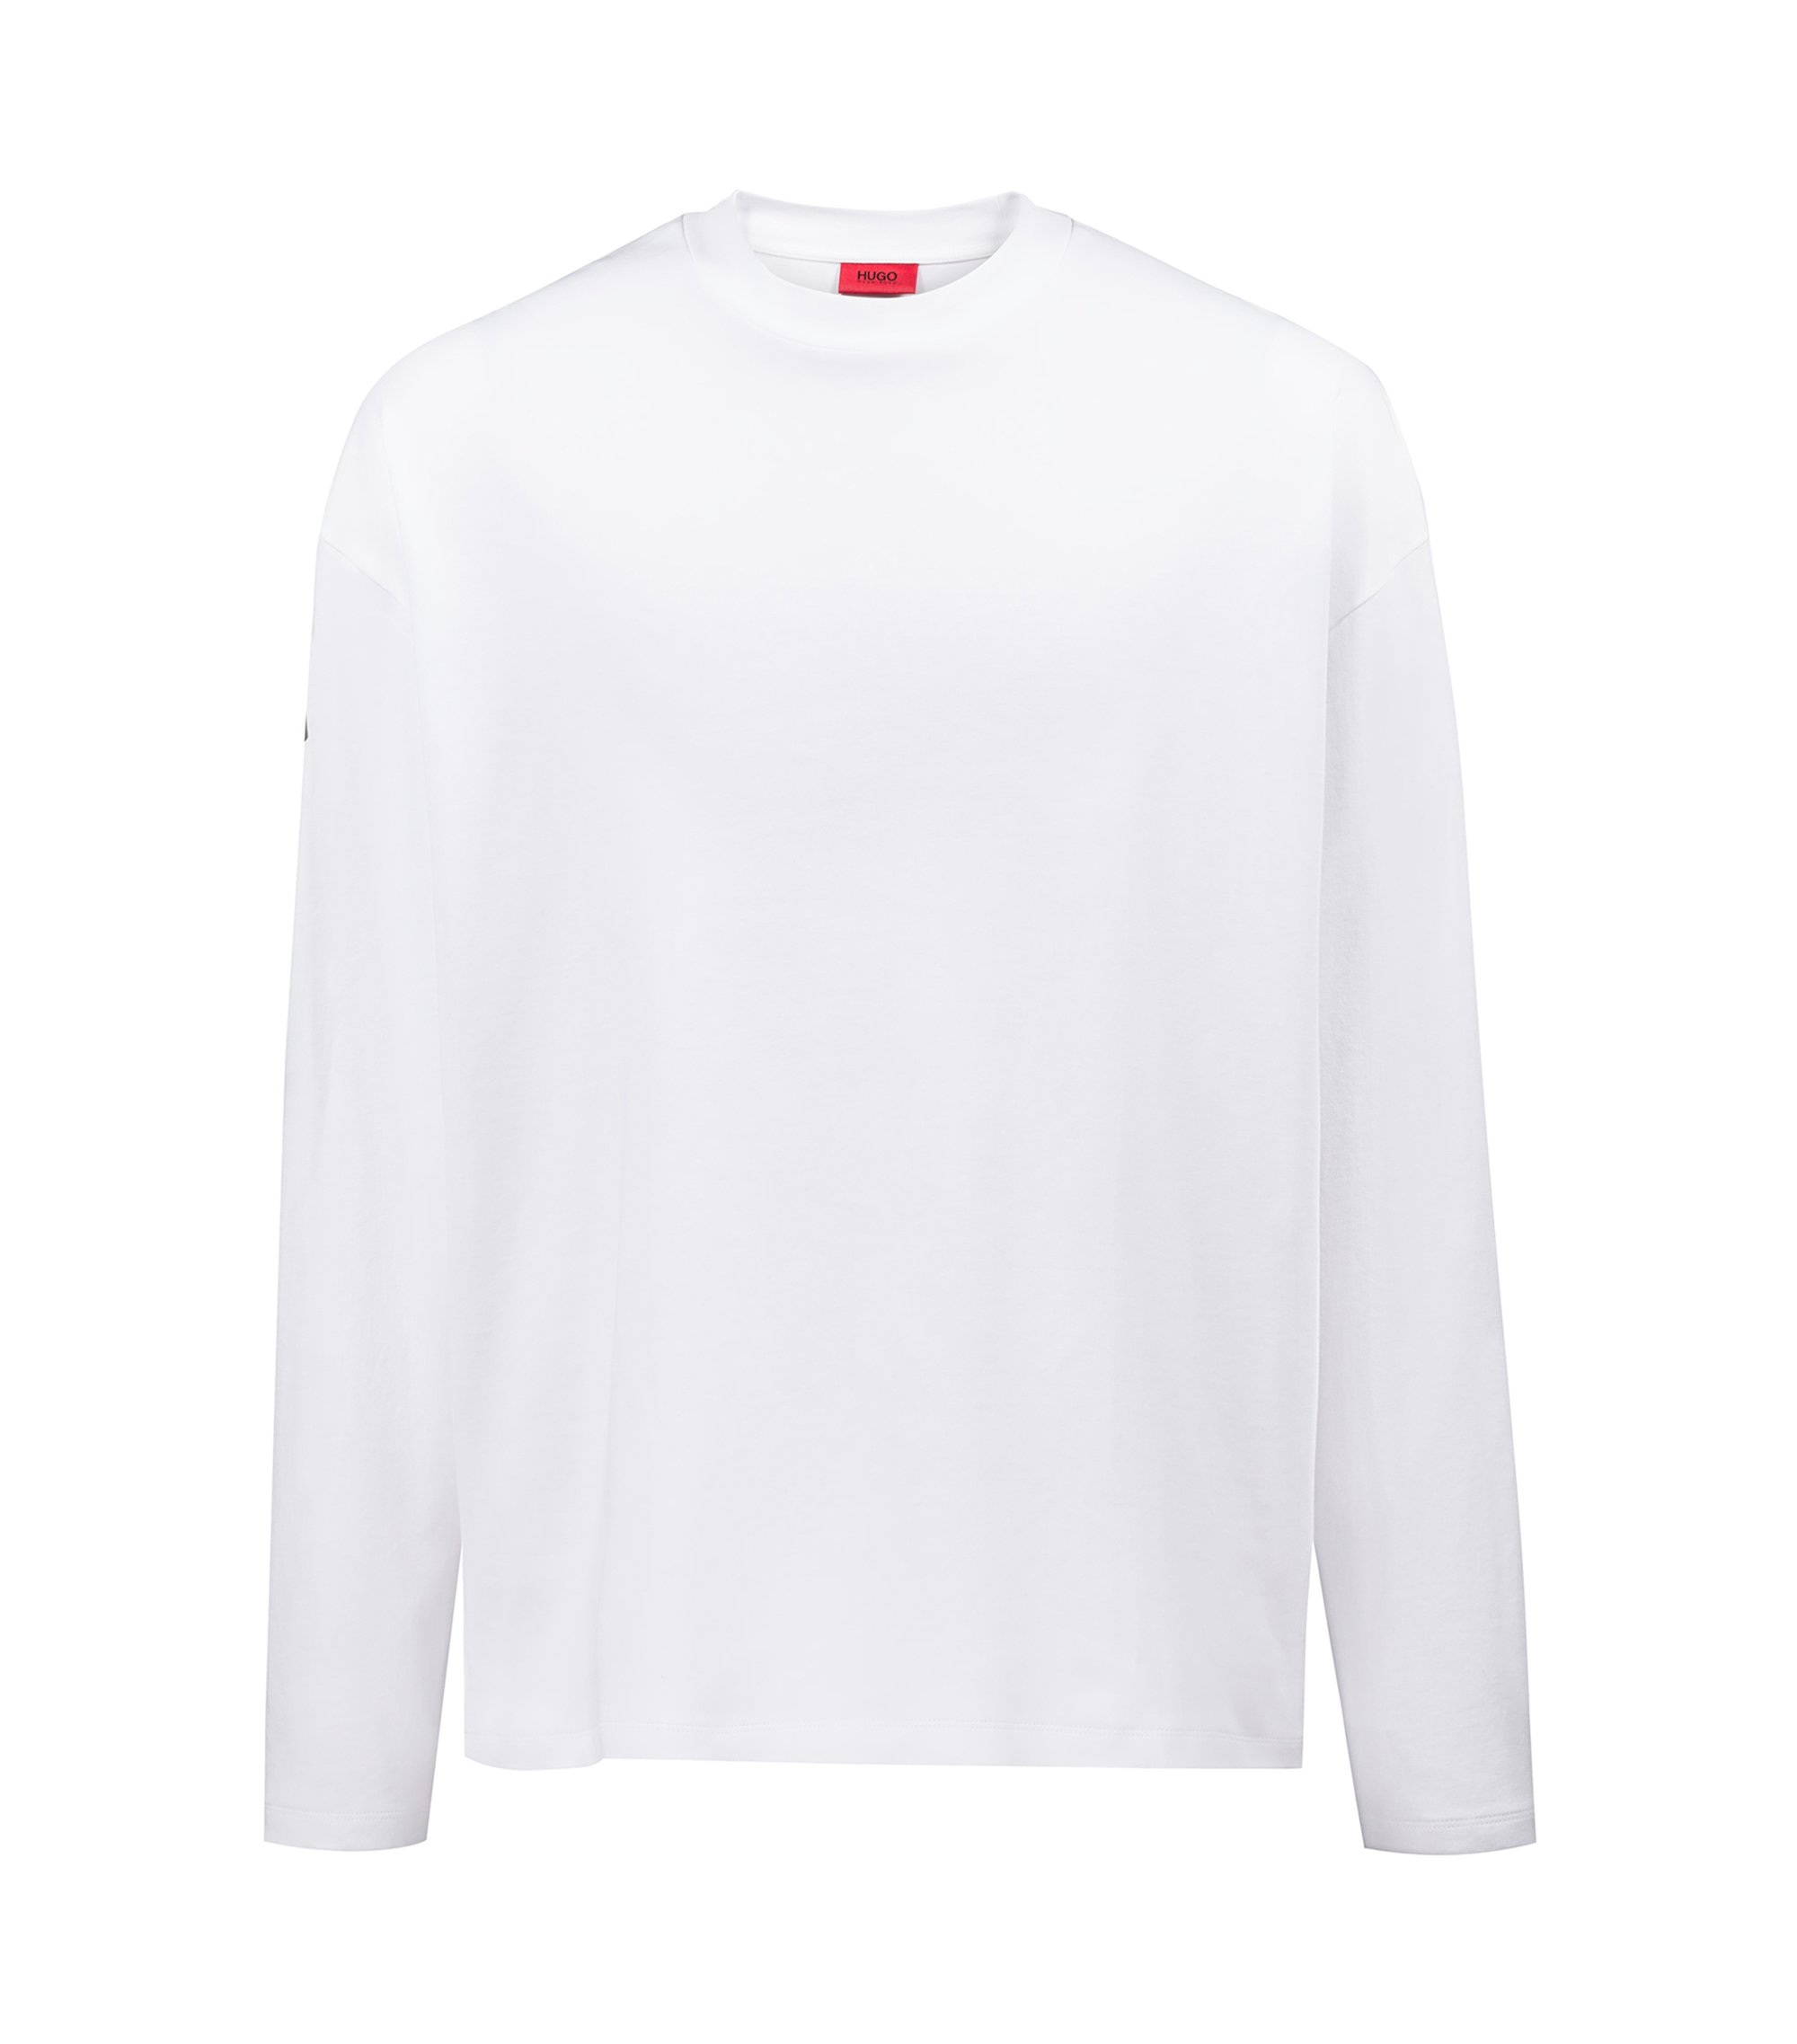 Oversized-fit T-shirt in cotton with printed grid reference, White